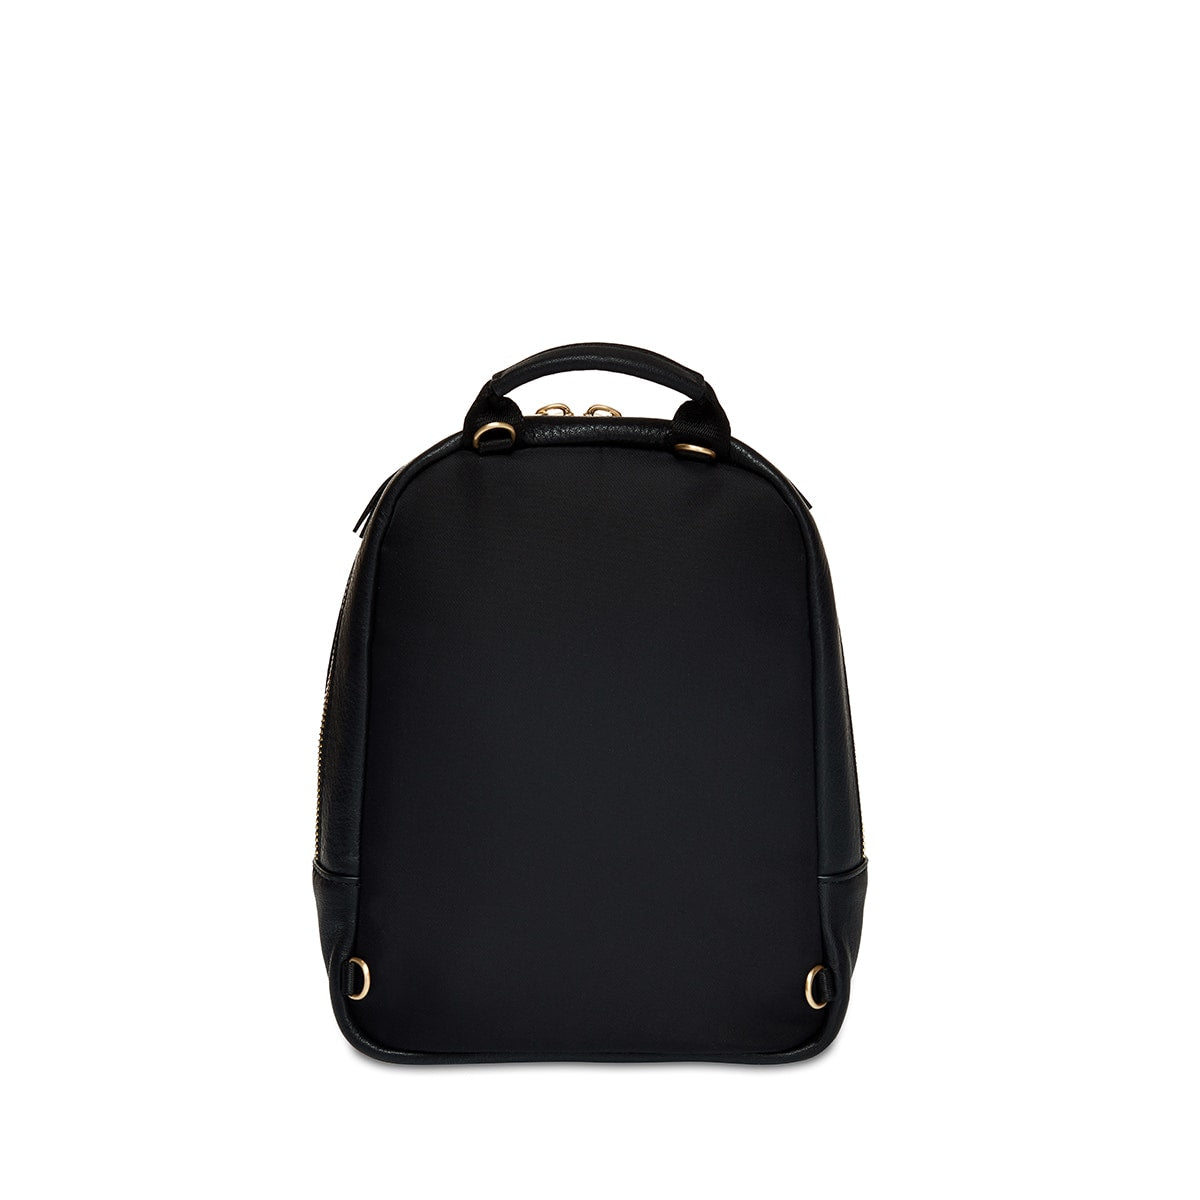 Beauchamp XXS Backpack / Cross-Body - Body | KNOMO